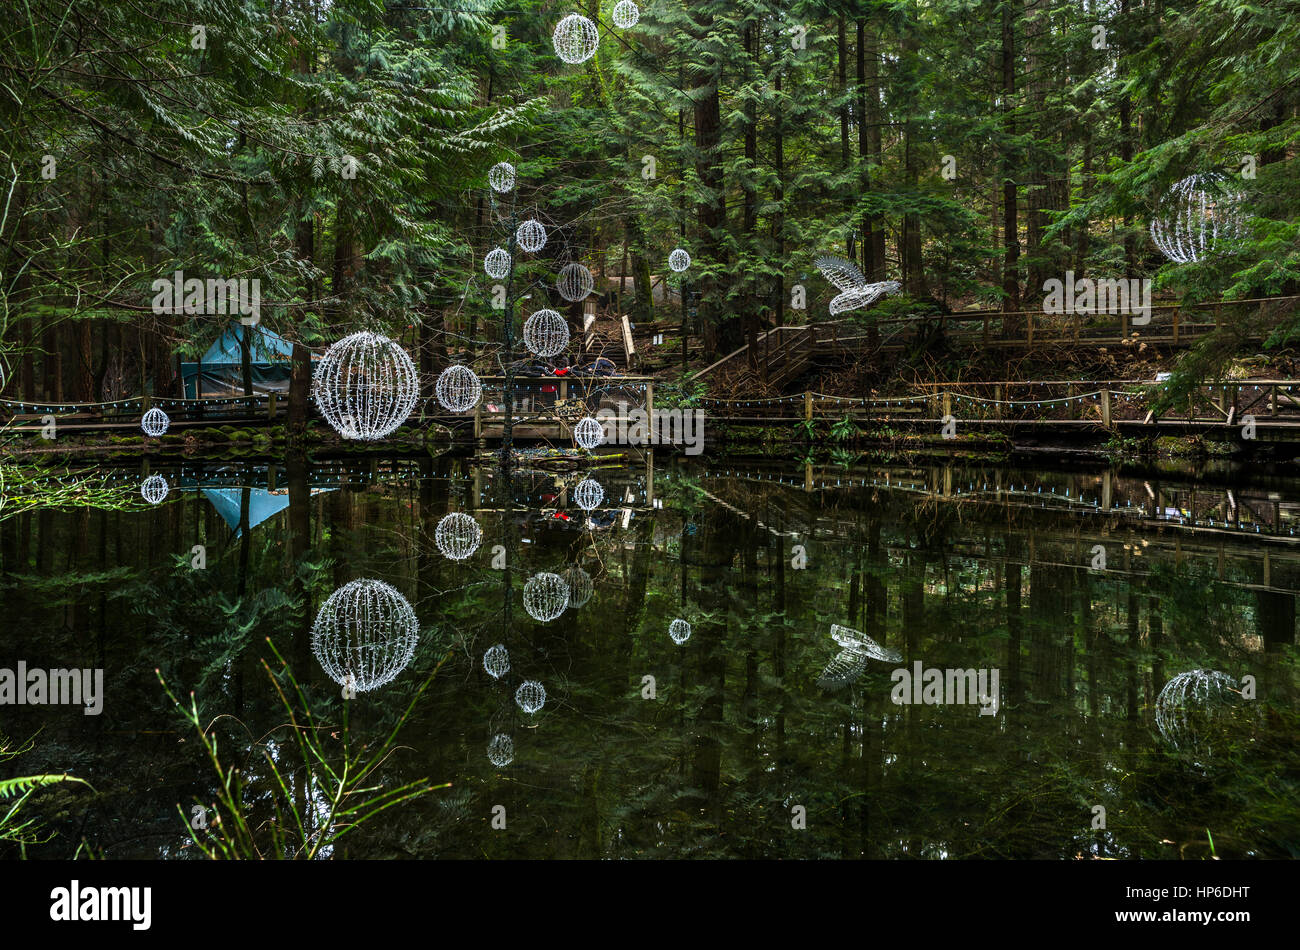 Vancouver, Canada - January 28, 2017: A pond with hanging lights reflected in the water at the Capilano Suspension Stock Photo